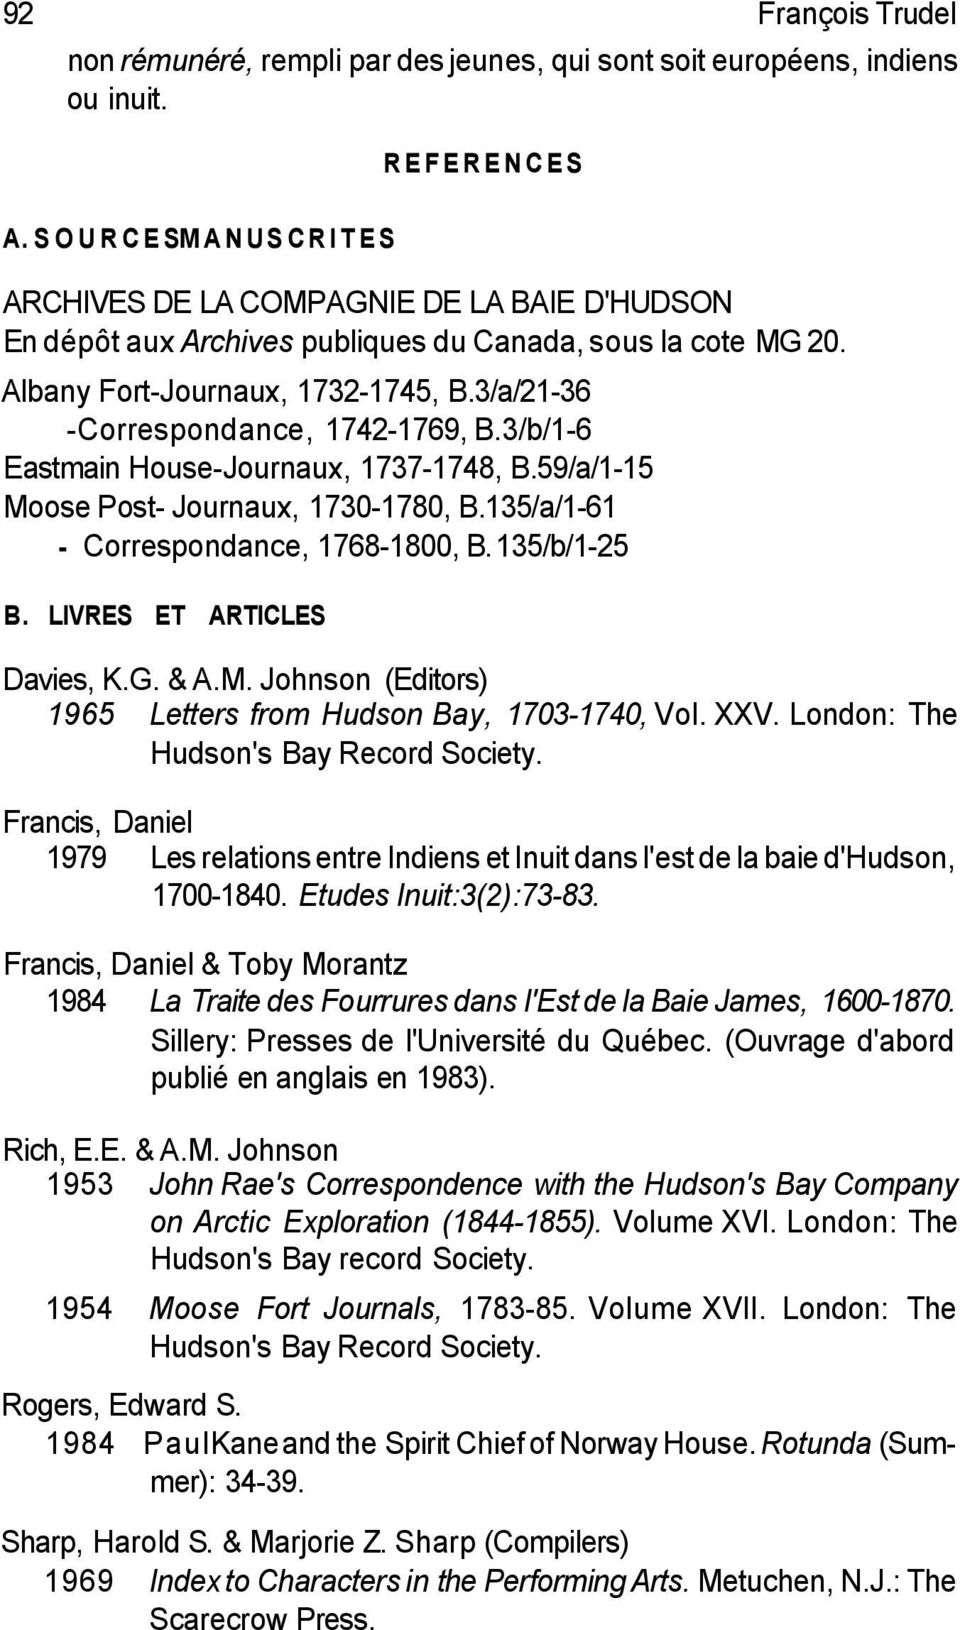 3/a/21-36 -Correspondance, 1742-1769, B.3/b/1-6 Eastmain House-Journaux, 1737-1748, B.59/a/1-15 Moose Post- Journaux, 1730-1780, B.135/a/1-61 - Correspondance, 1768-1800, B. 135/b/1-25 B.